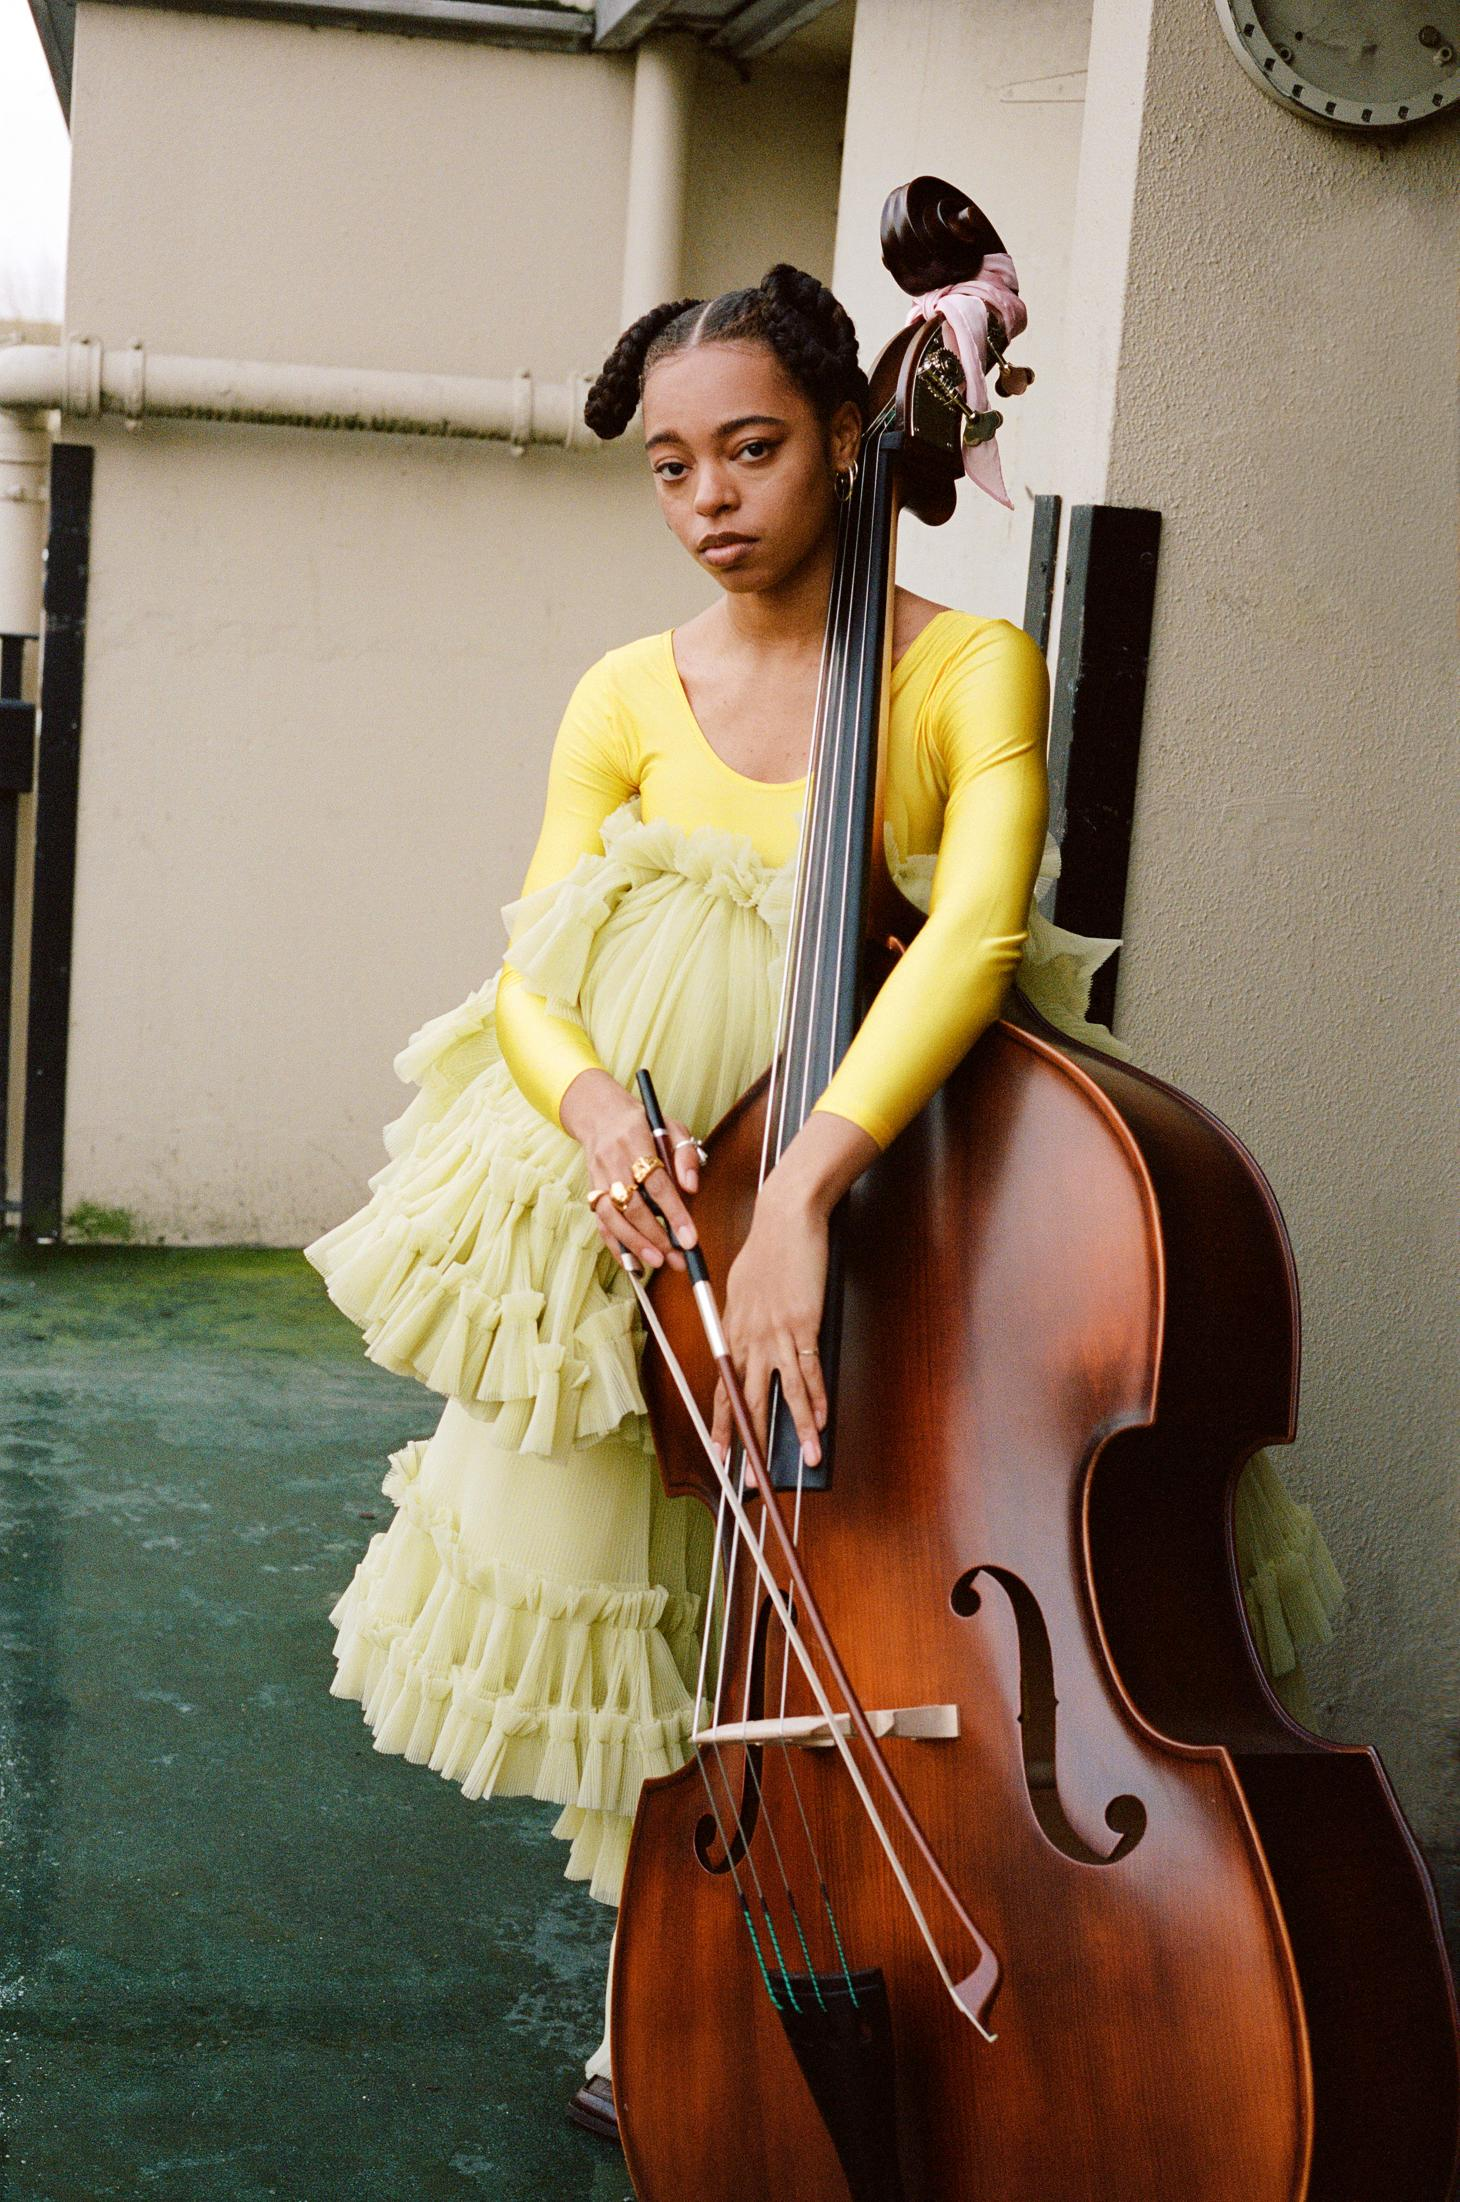 Still from Fenn O'Malley film of girl with cello in yellow dress